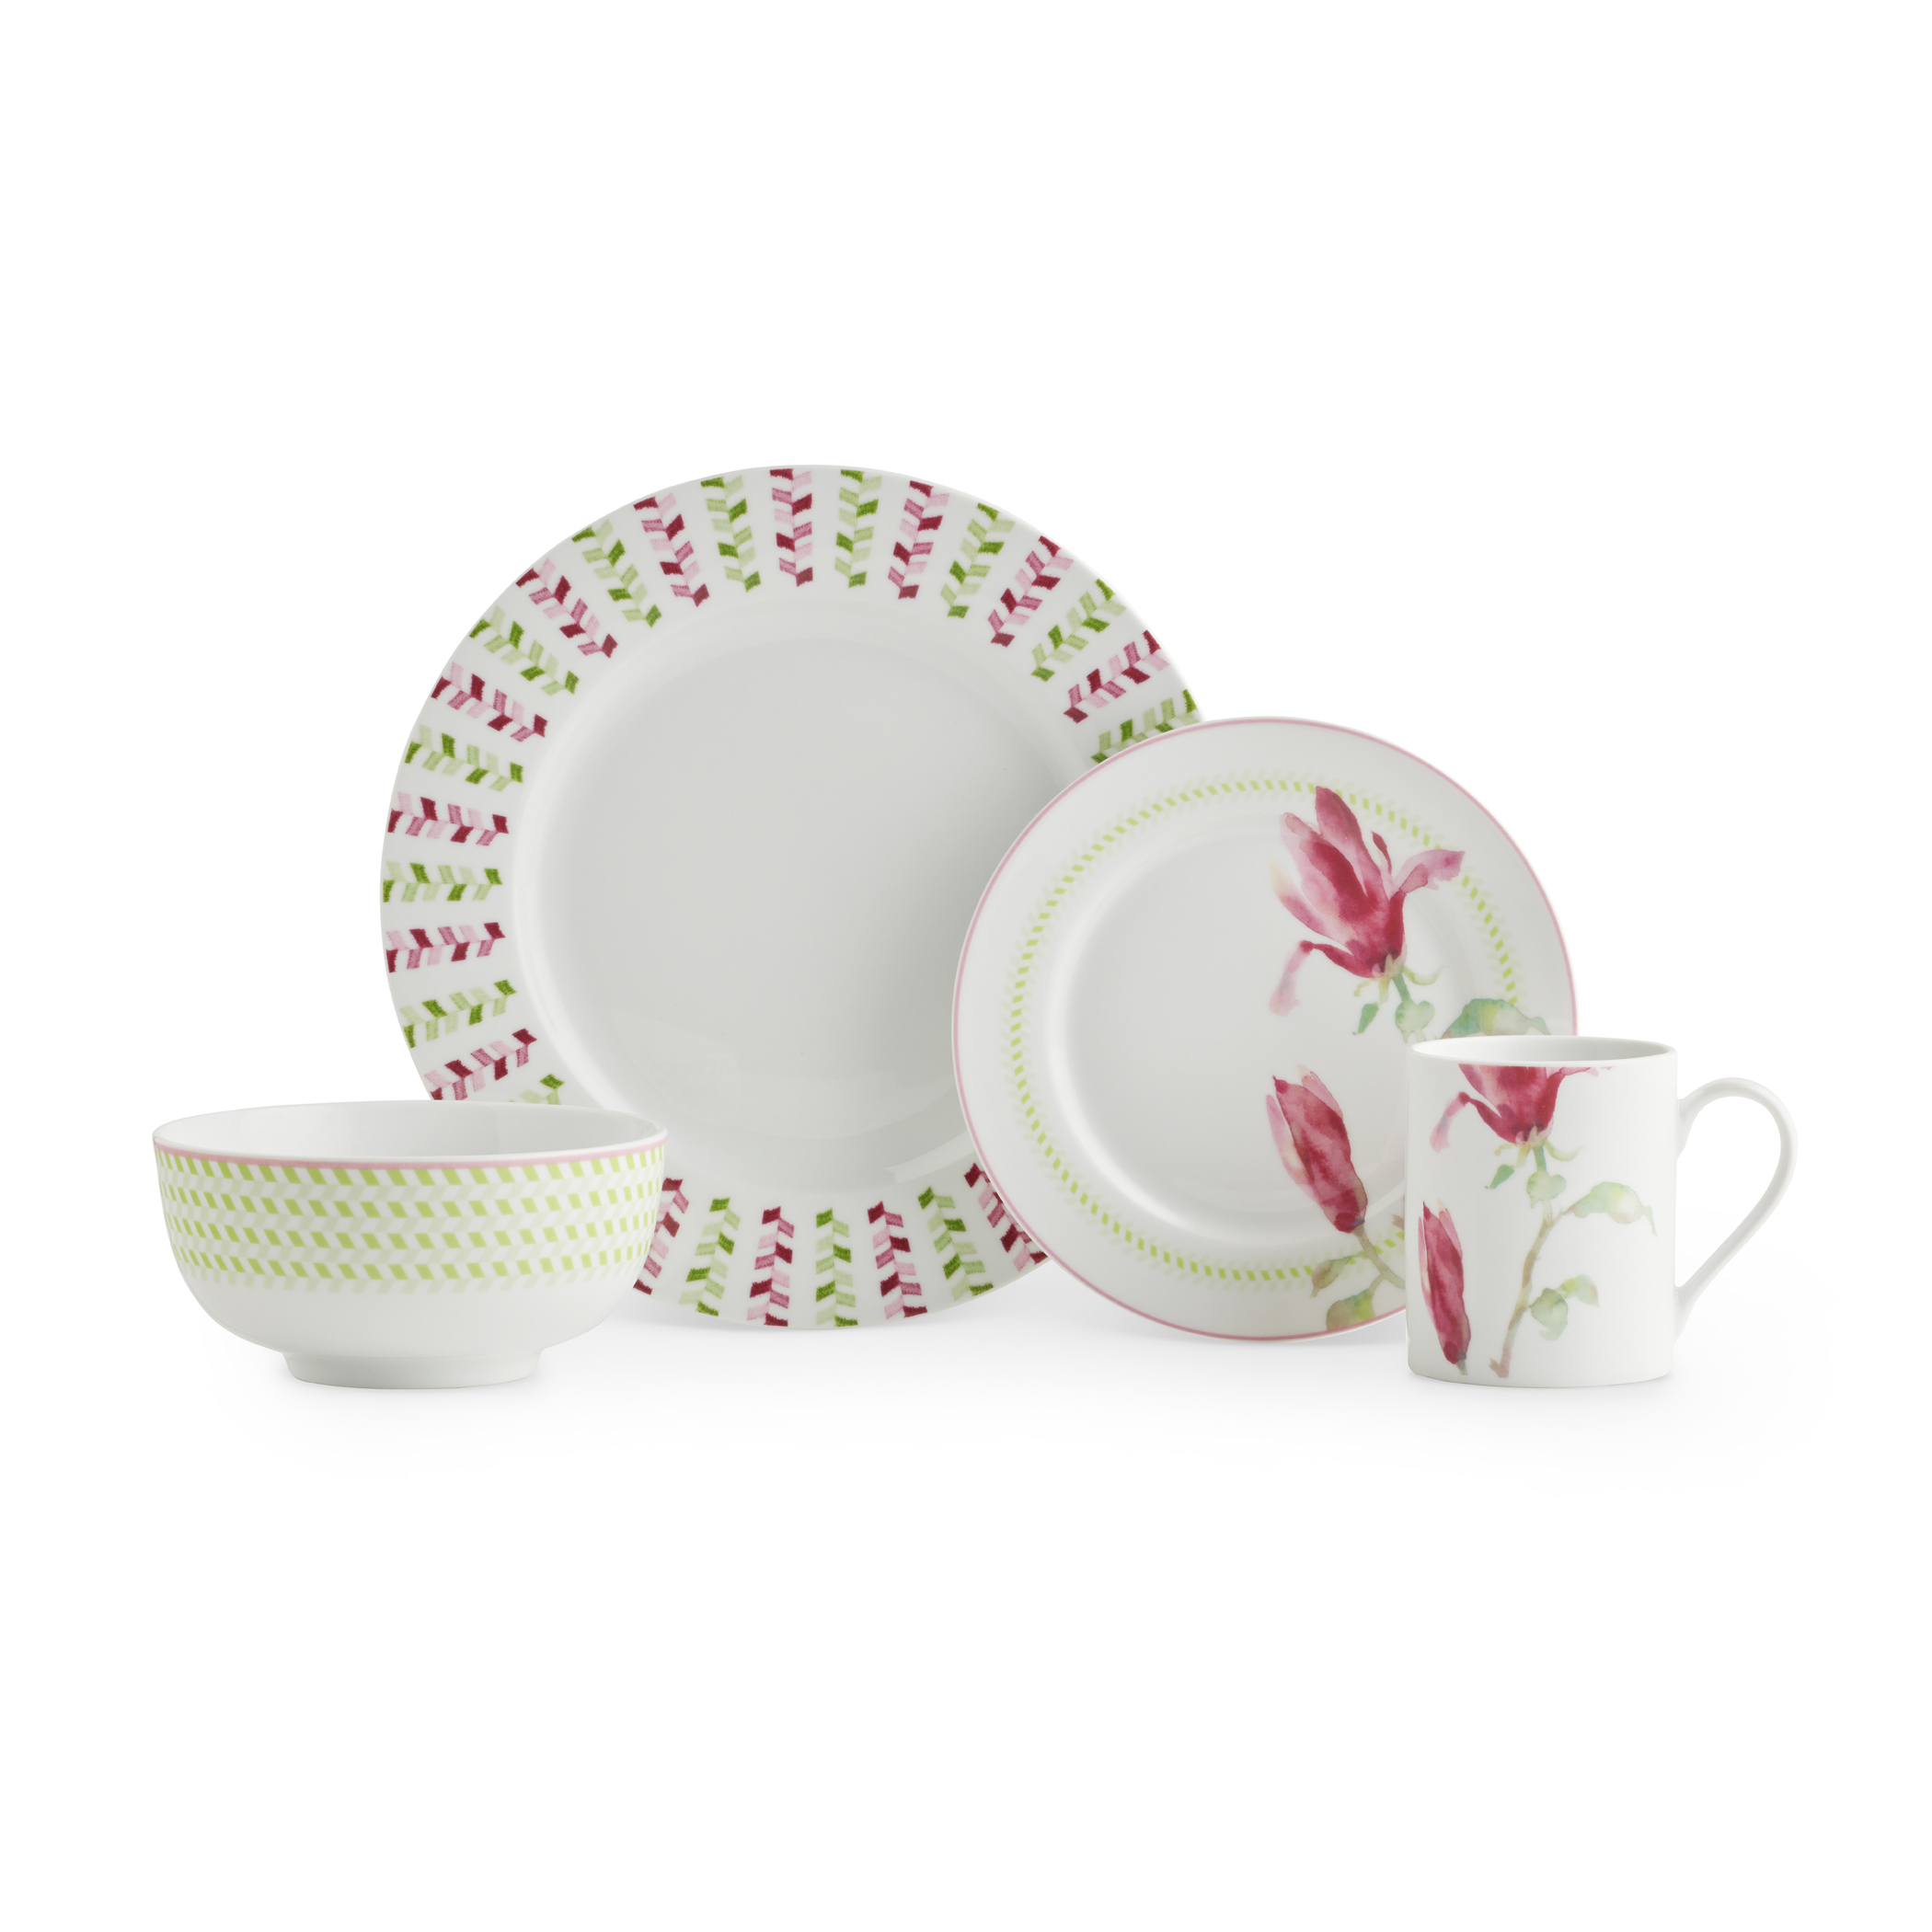 Spode Home Magnolia Haze 16 Piece SET image number 1